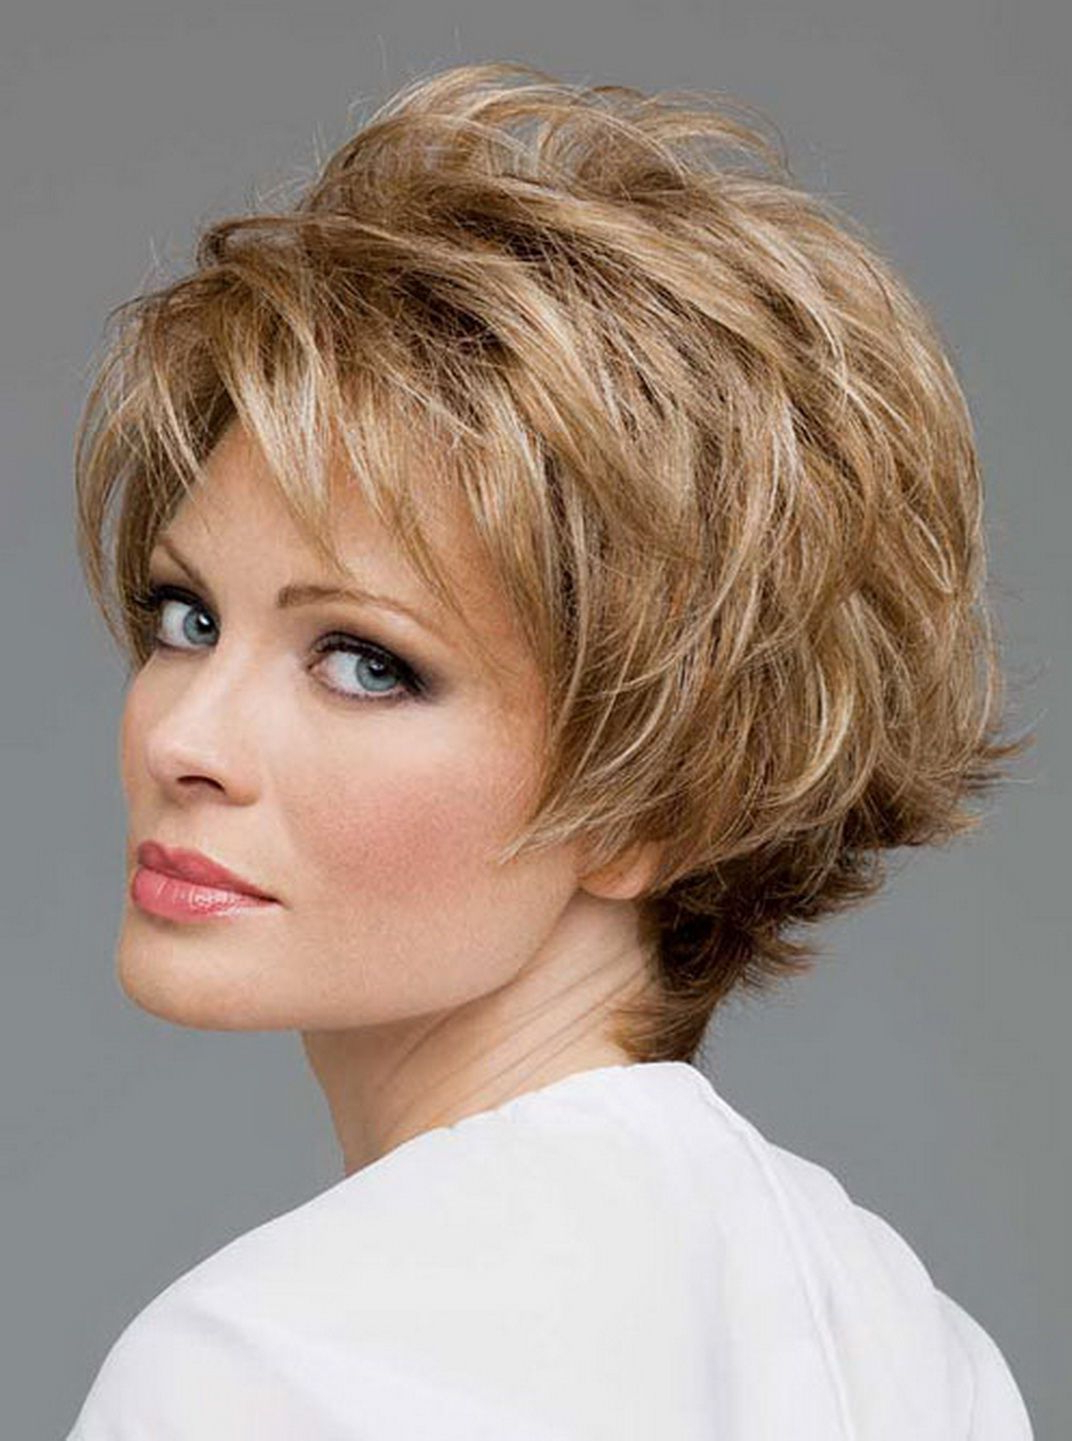 Edgy+Hairstyles+For+Over+60 | Trendy Short Hair Trends Haircuts For Within Short Hairstyles For Thick Hair Over (View 15 of 25)